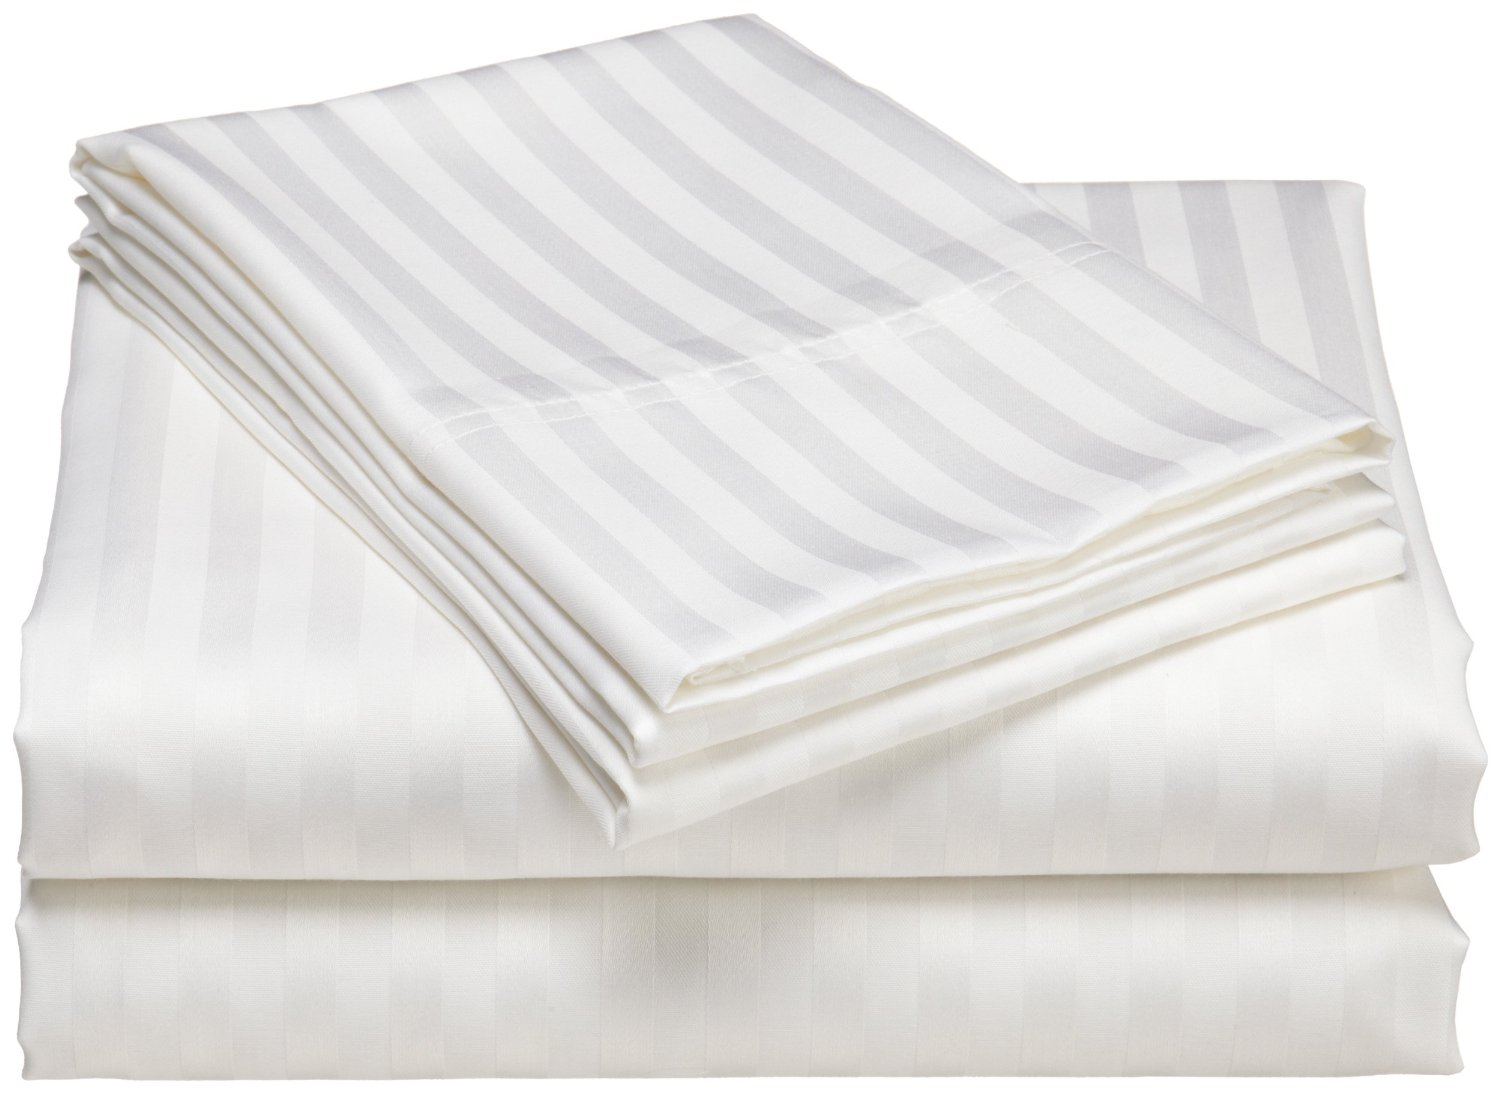 Bedsheet 300tc stripe white cotton